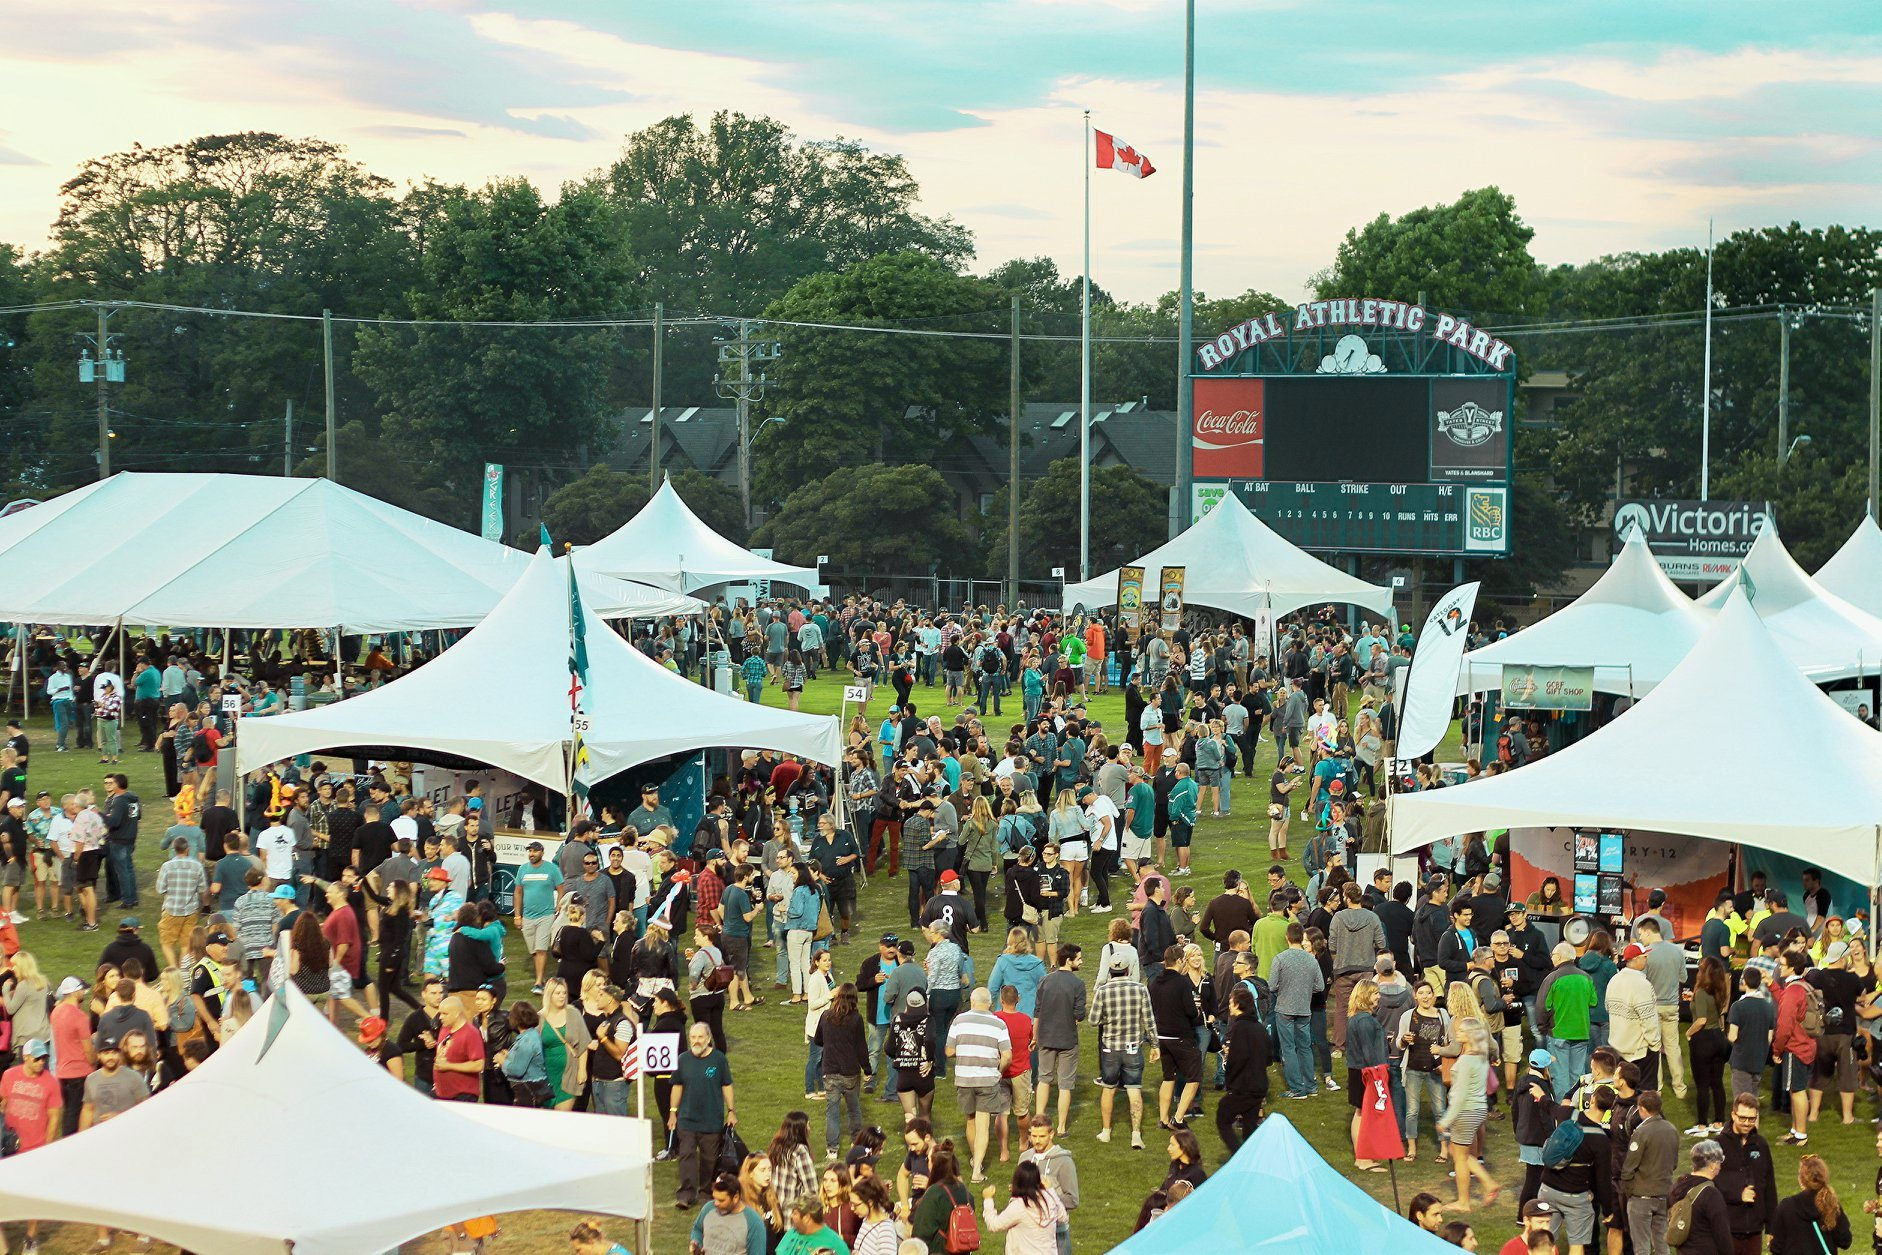 image courtesy of the Great Canadian Beer Festival